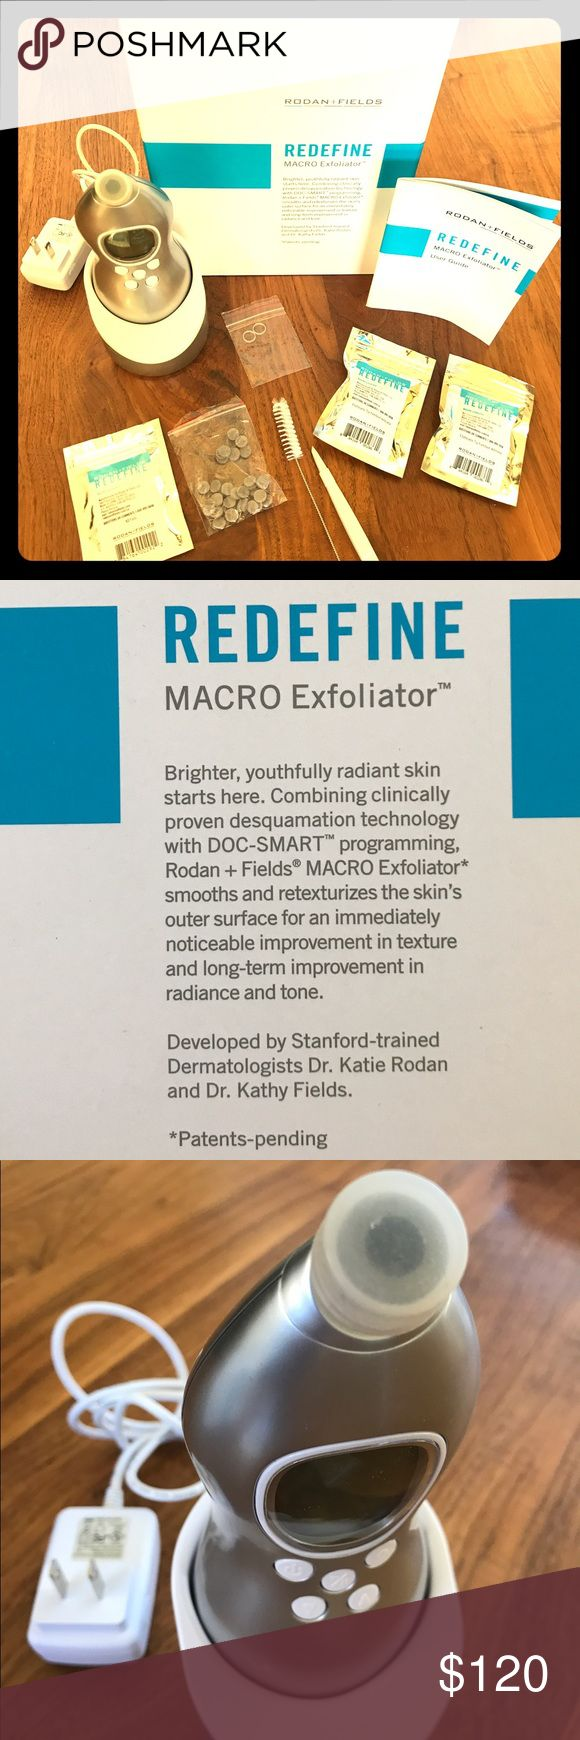 Rodan + Fields MACRO Exfoliator. Like new. Brighter, youthfully radiant skin starts here. Combining clinically proven desquamation technology with DOC-SMART programming, the Macro Exfoliator smooths and retexturizes the skin's outer surface for an immediately noticeable improvement in texture and long-term improvement in radiance and tone.  EUC Makeup Brushes & Tools